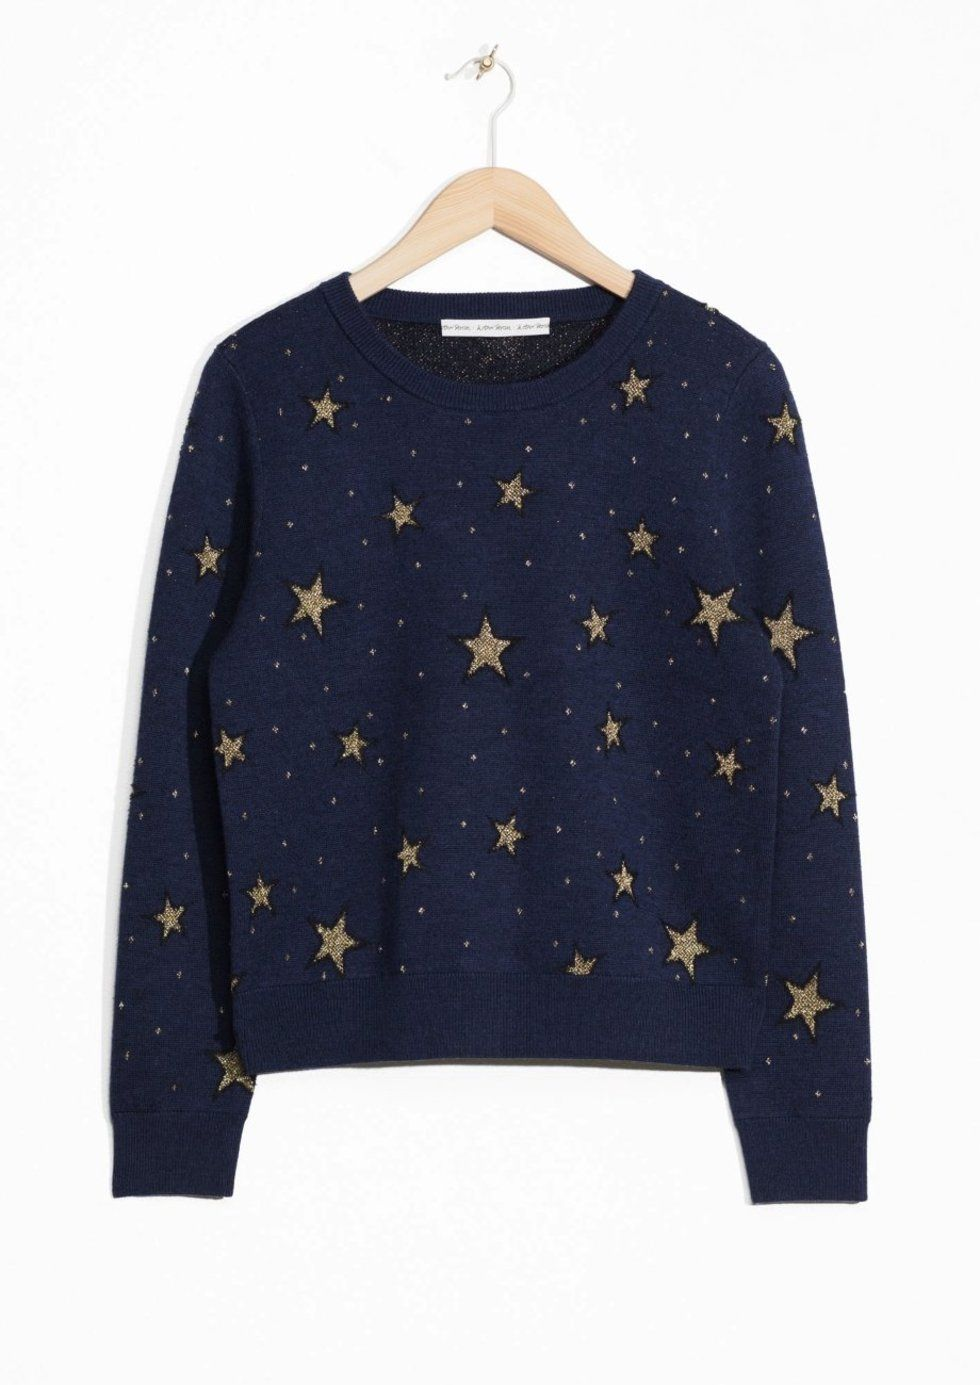 30 Christmas jumpers to suit every taste